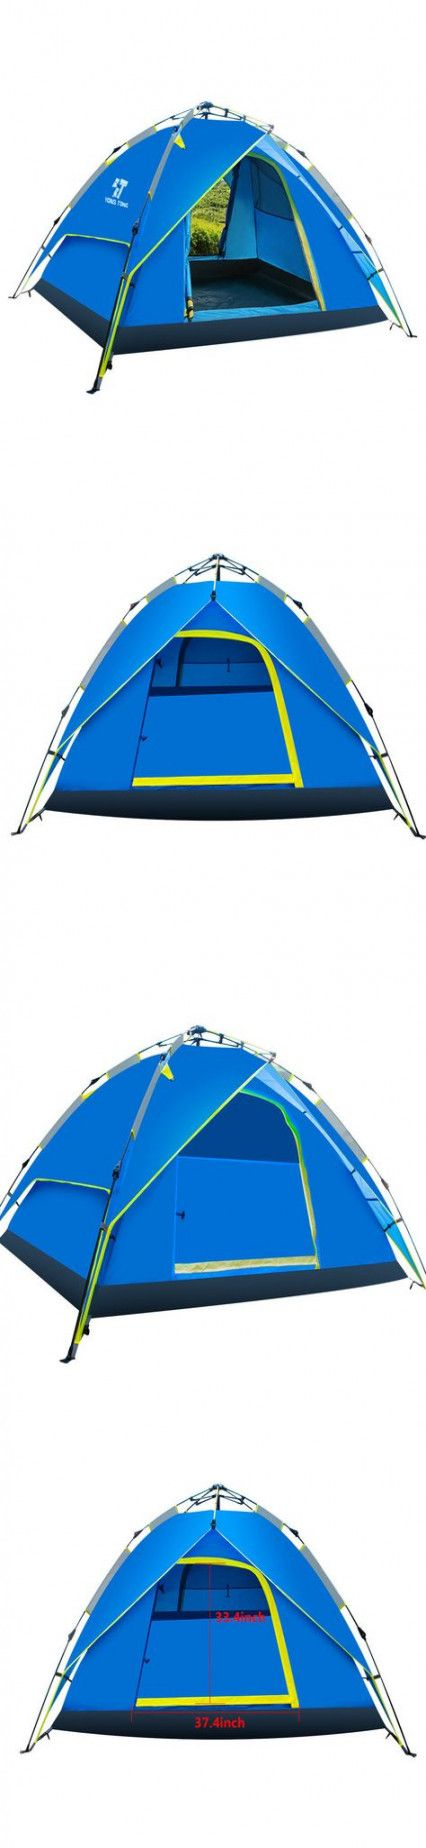 Tent camping for beginners nature 42+ ideas #nature # ...